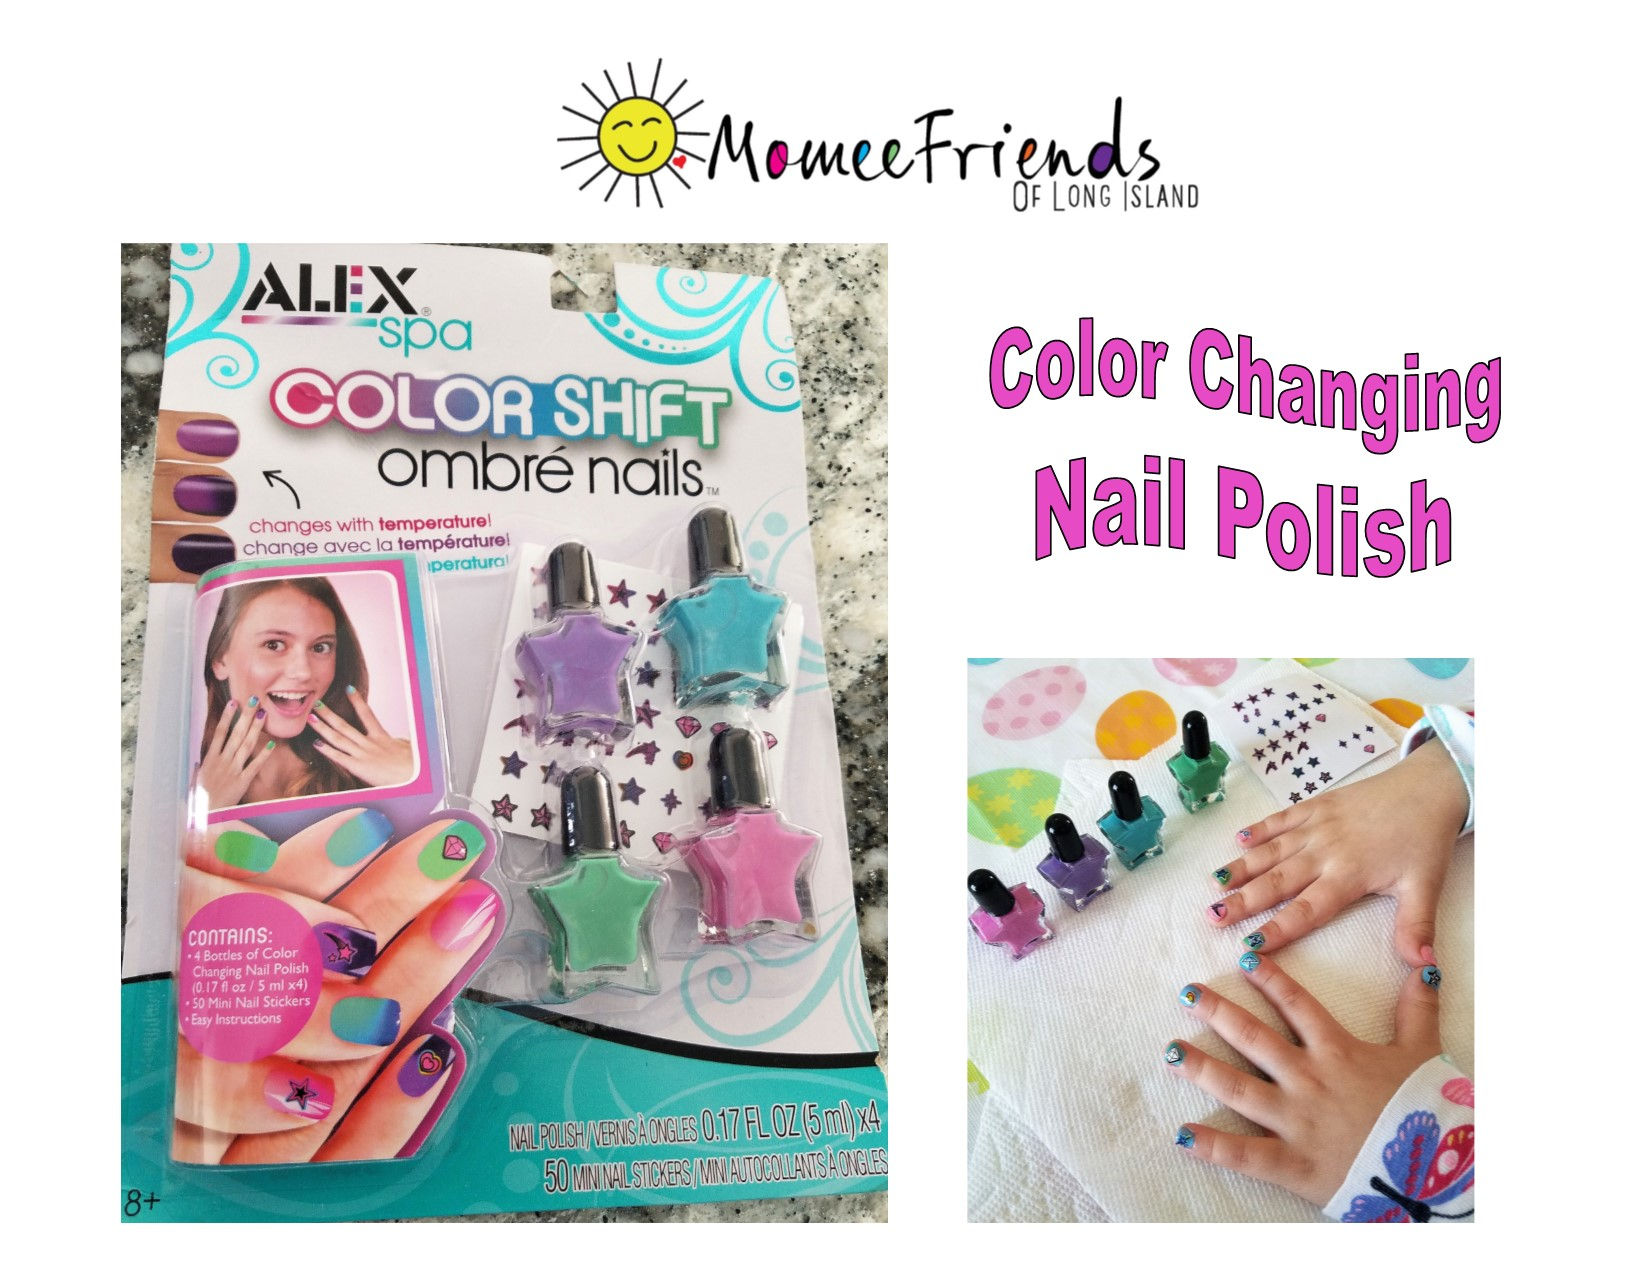 ALEX Spa Color Shift Ombré Nails | momeefriendsli